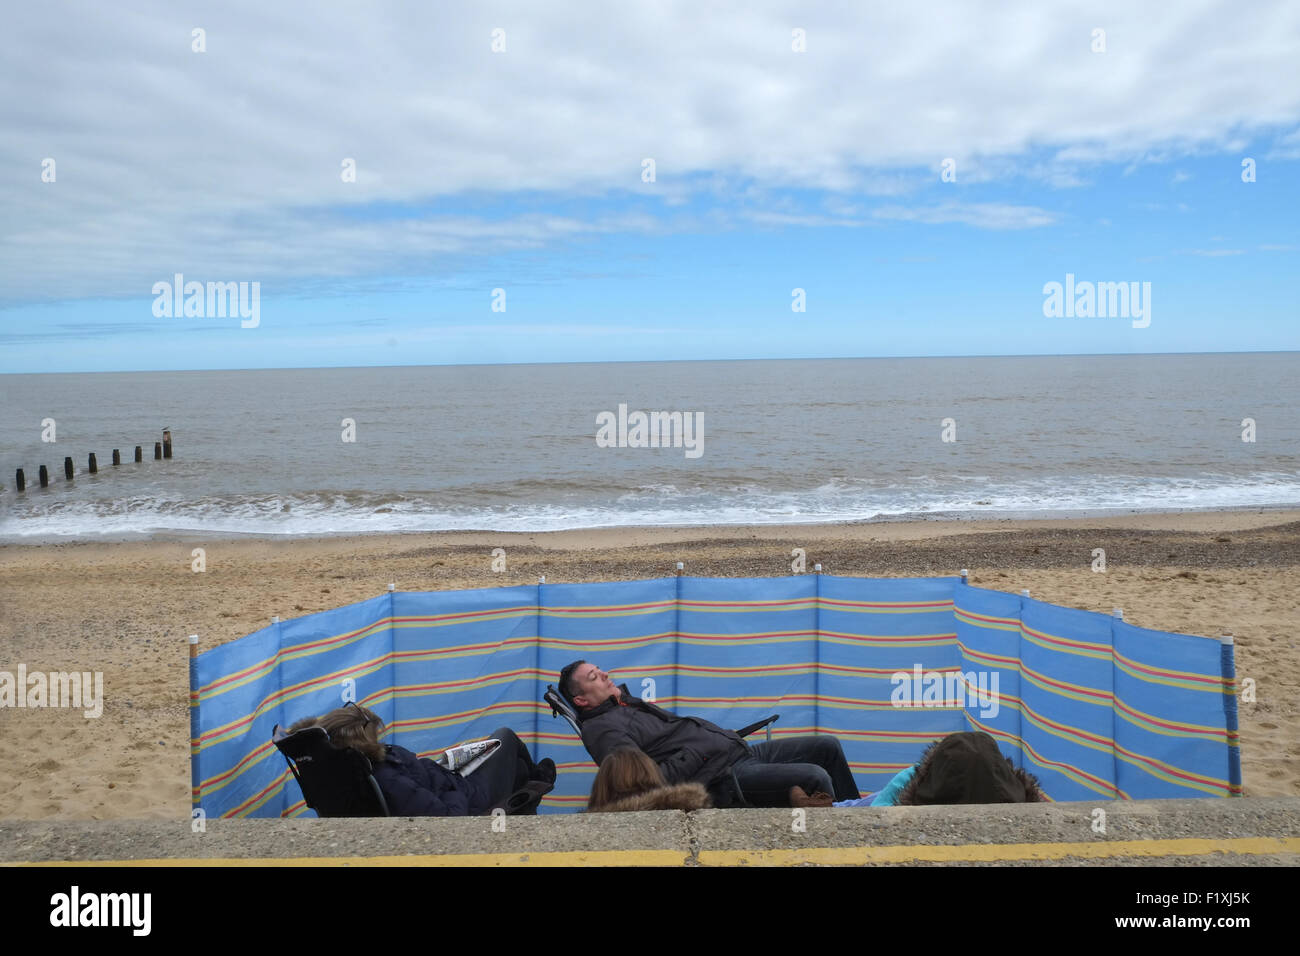 comical day out at the seaside showing family relaxing behind a windbreak - Stock Image